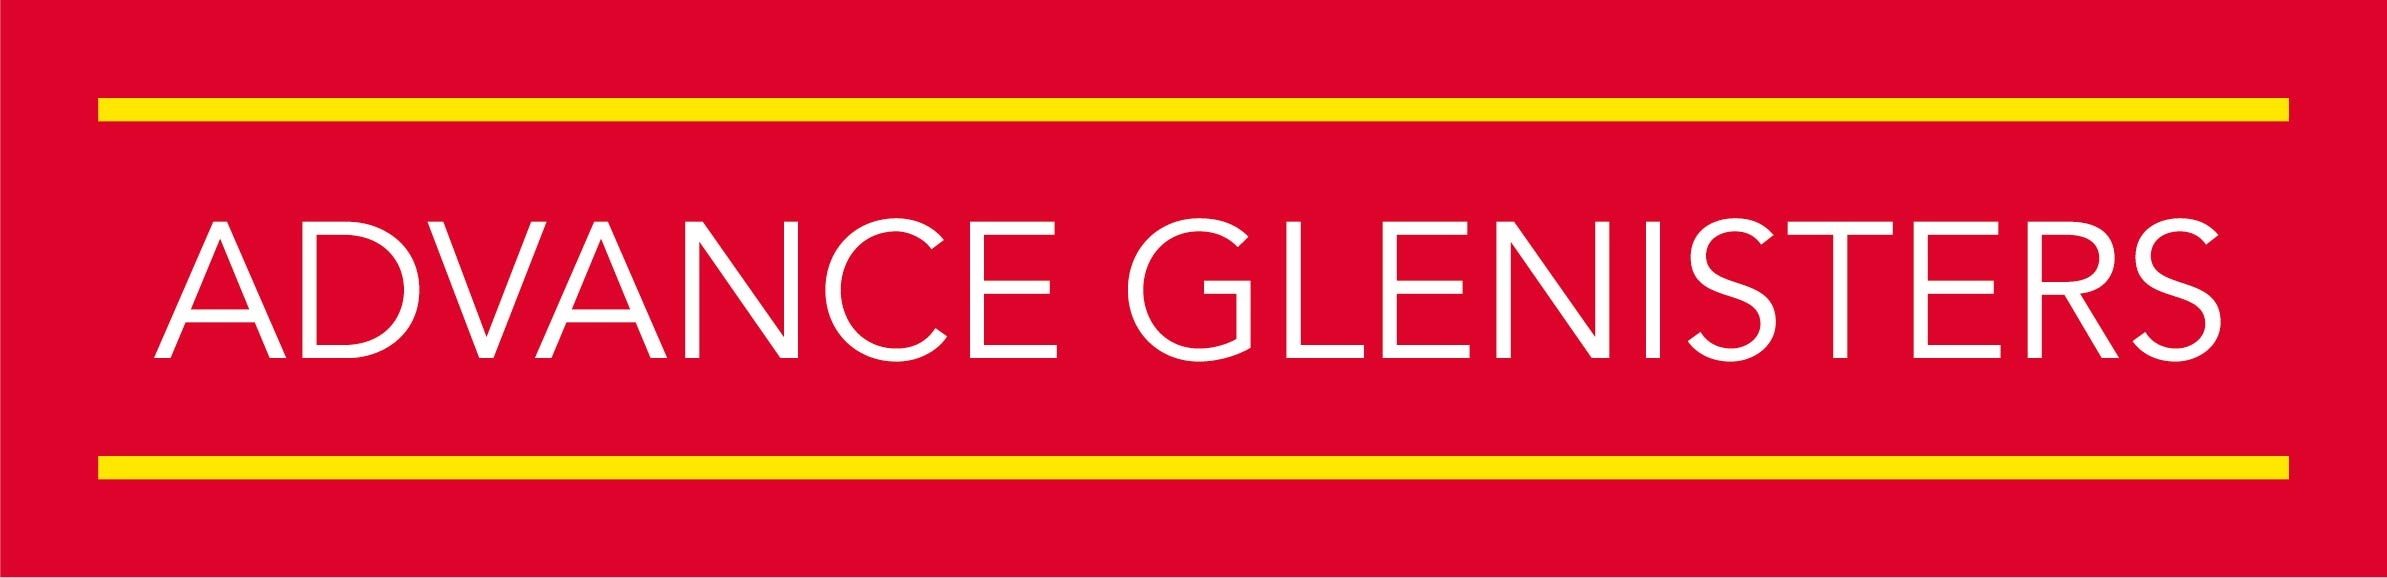 Advance Glenisters Logo